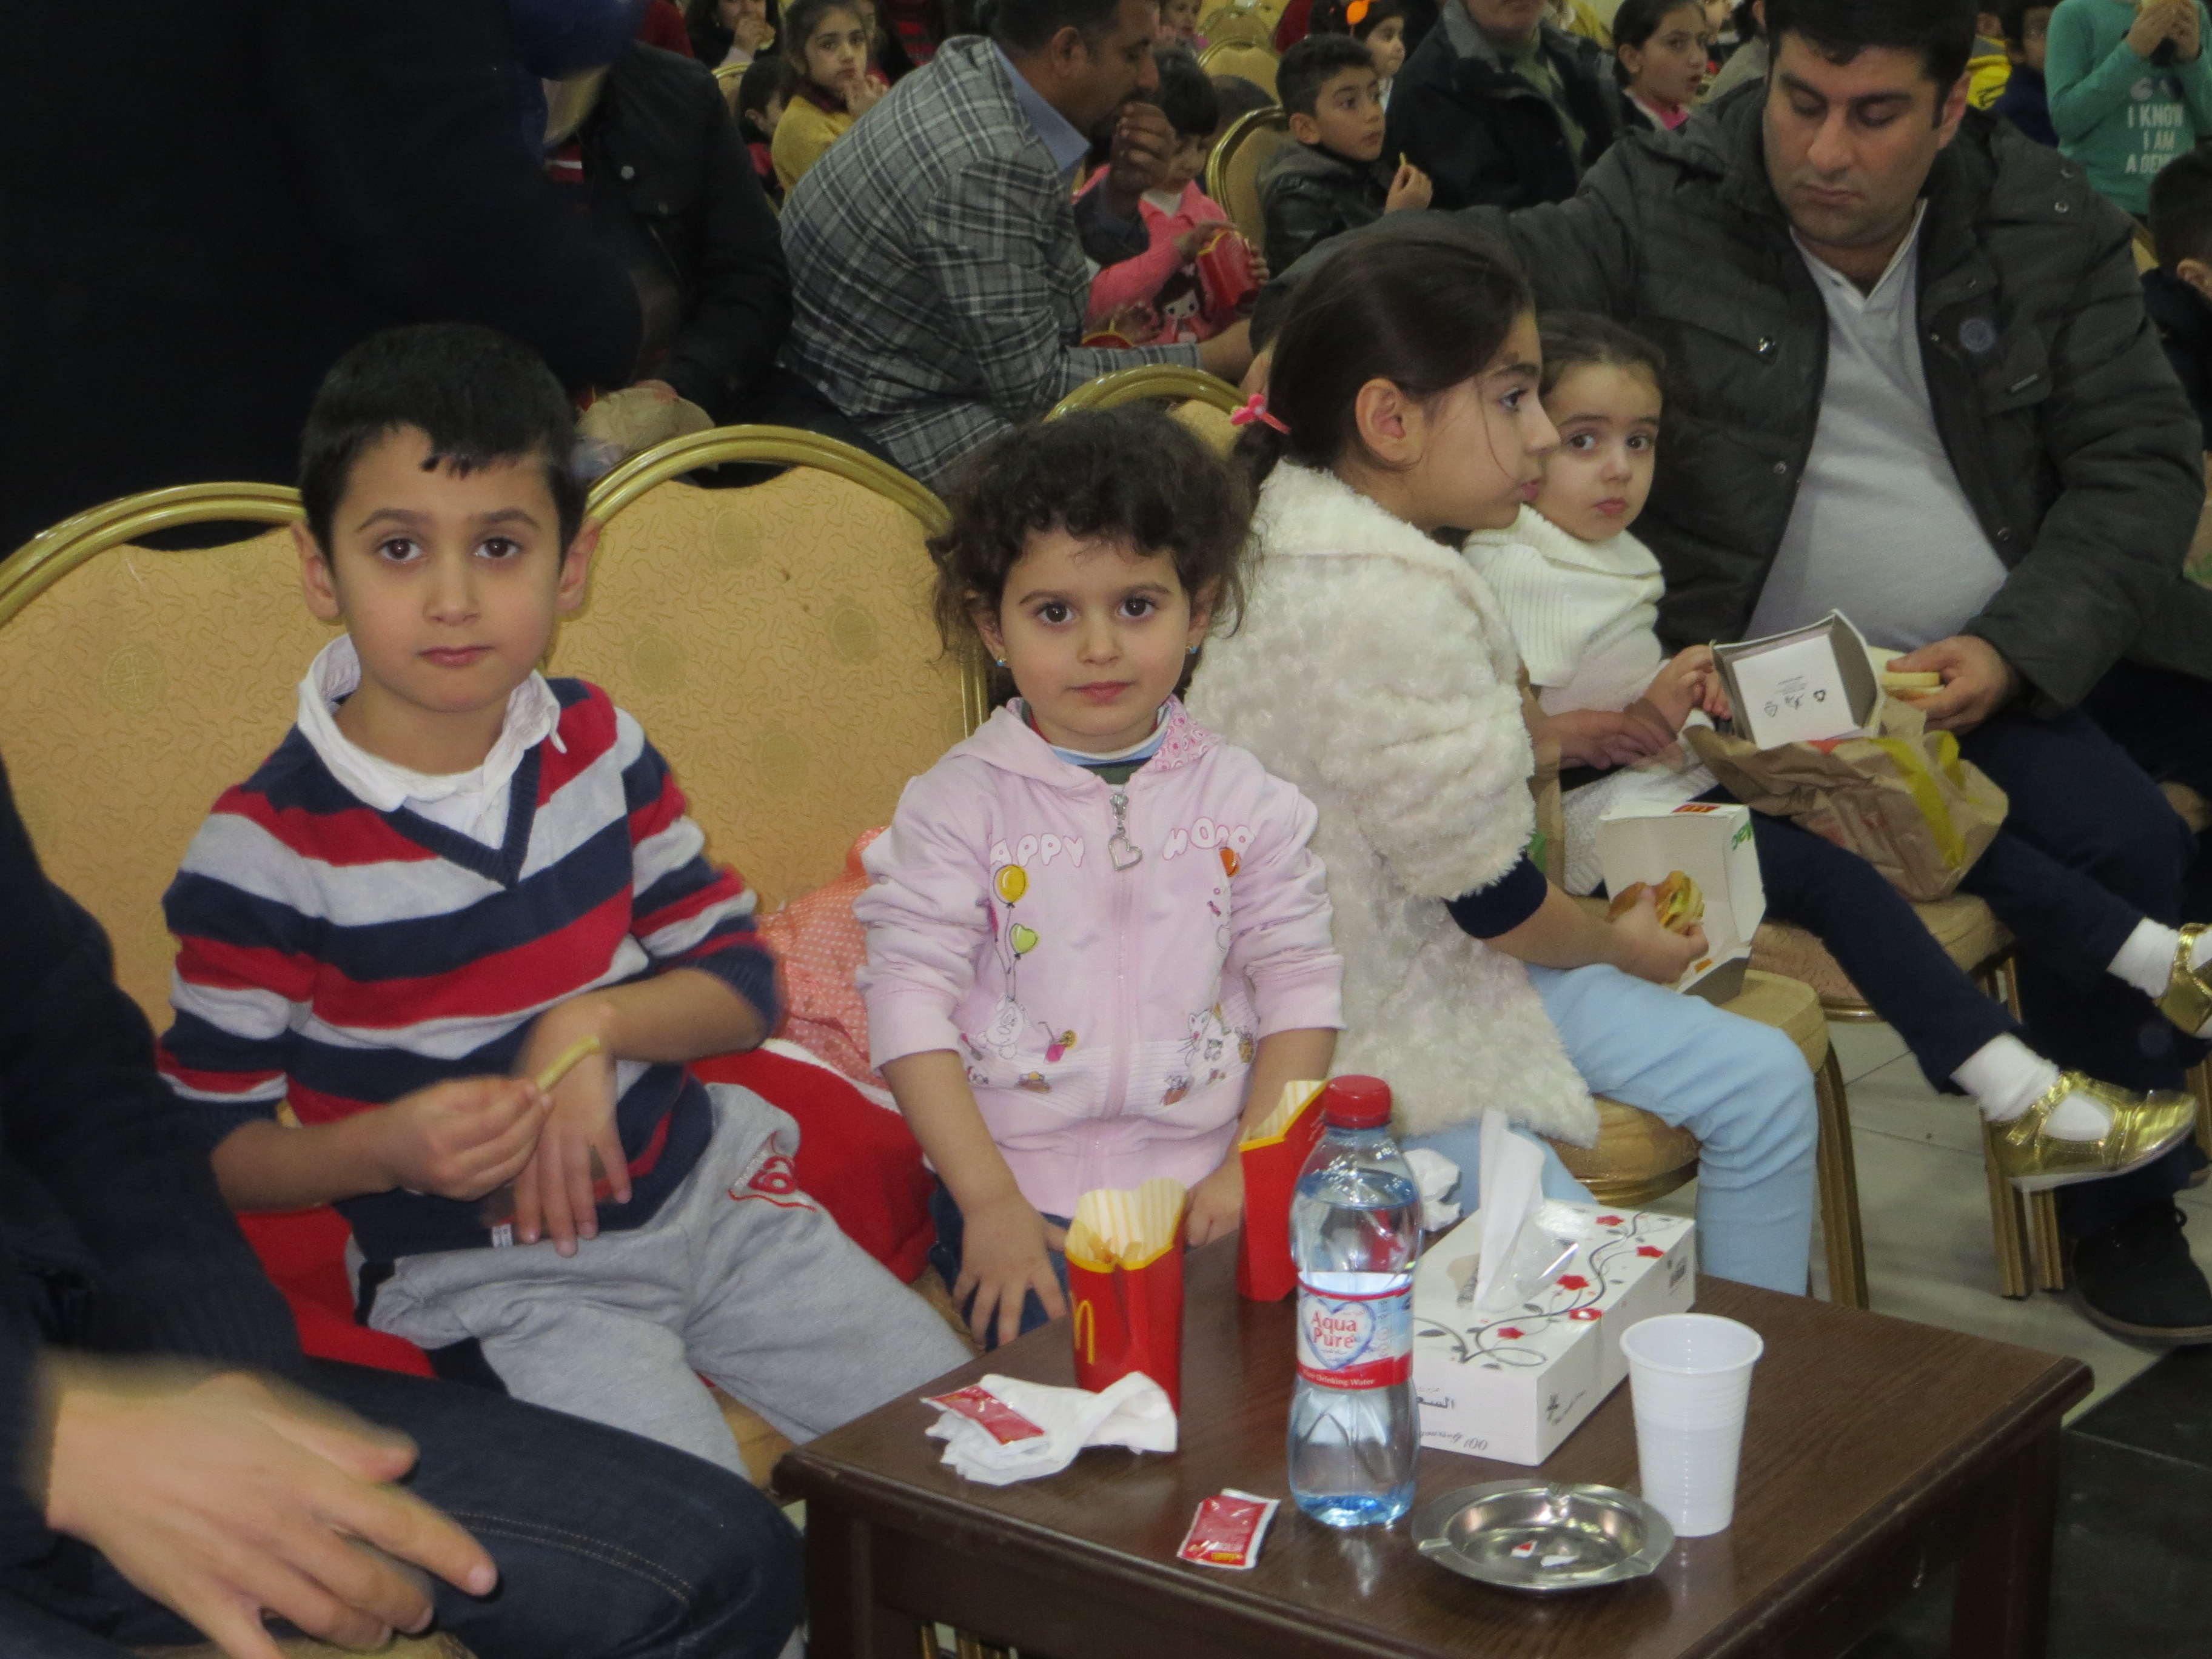 Snack time for Christian refugees